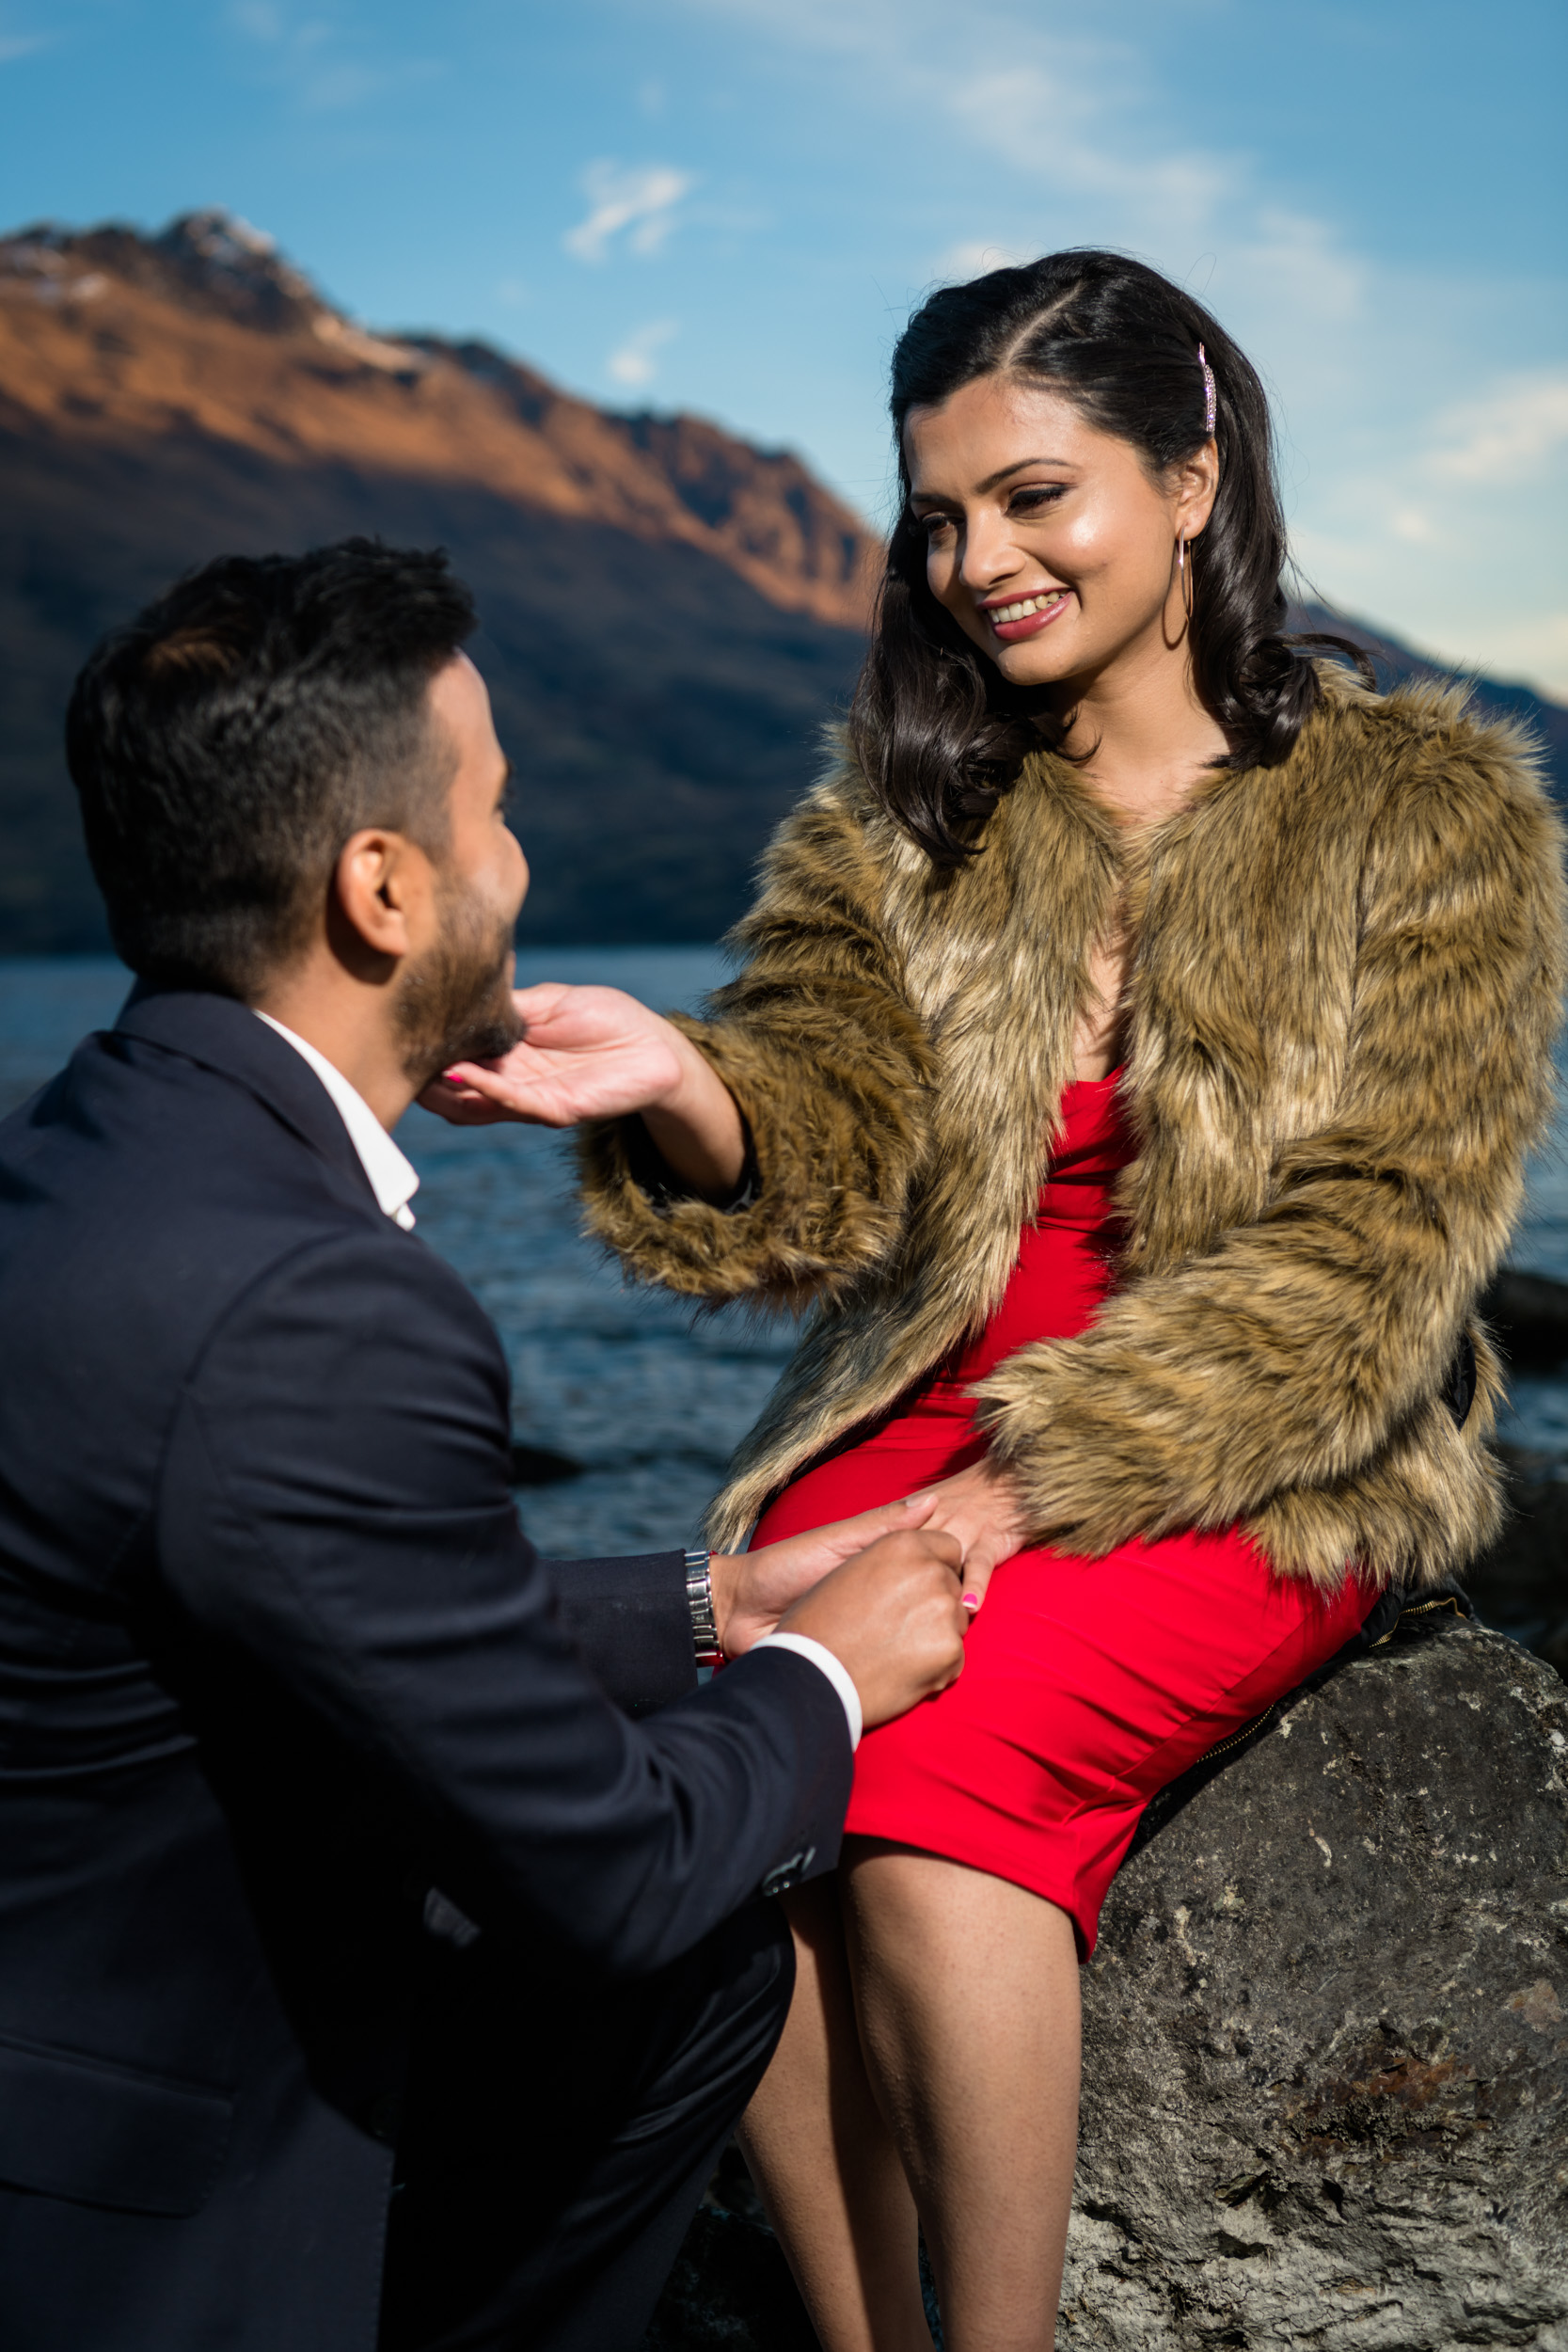 True Love - Lakeside Queenstown New Zealand - Professional Photography Capturing your Special Day